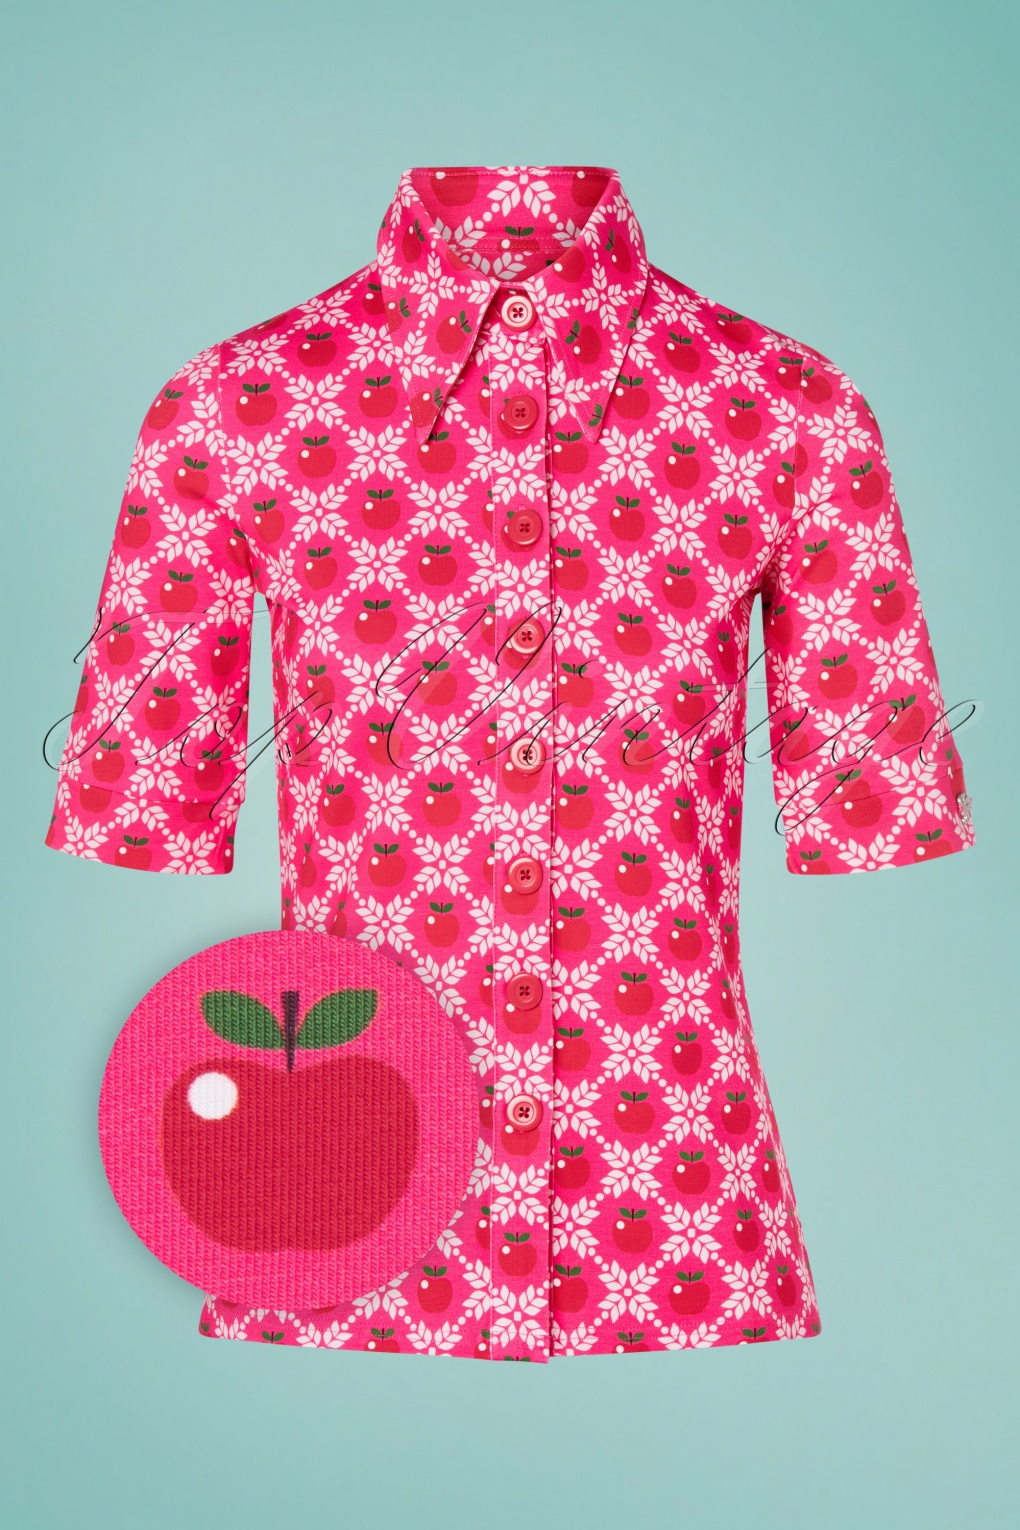 60s Shirts, T-shirts, Blouses, Hippie Shirts 60s Apple Grain Button Blouse in Pink £52.67 AT vintagedancer.com